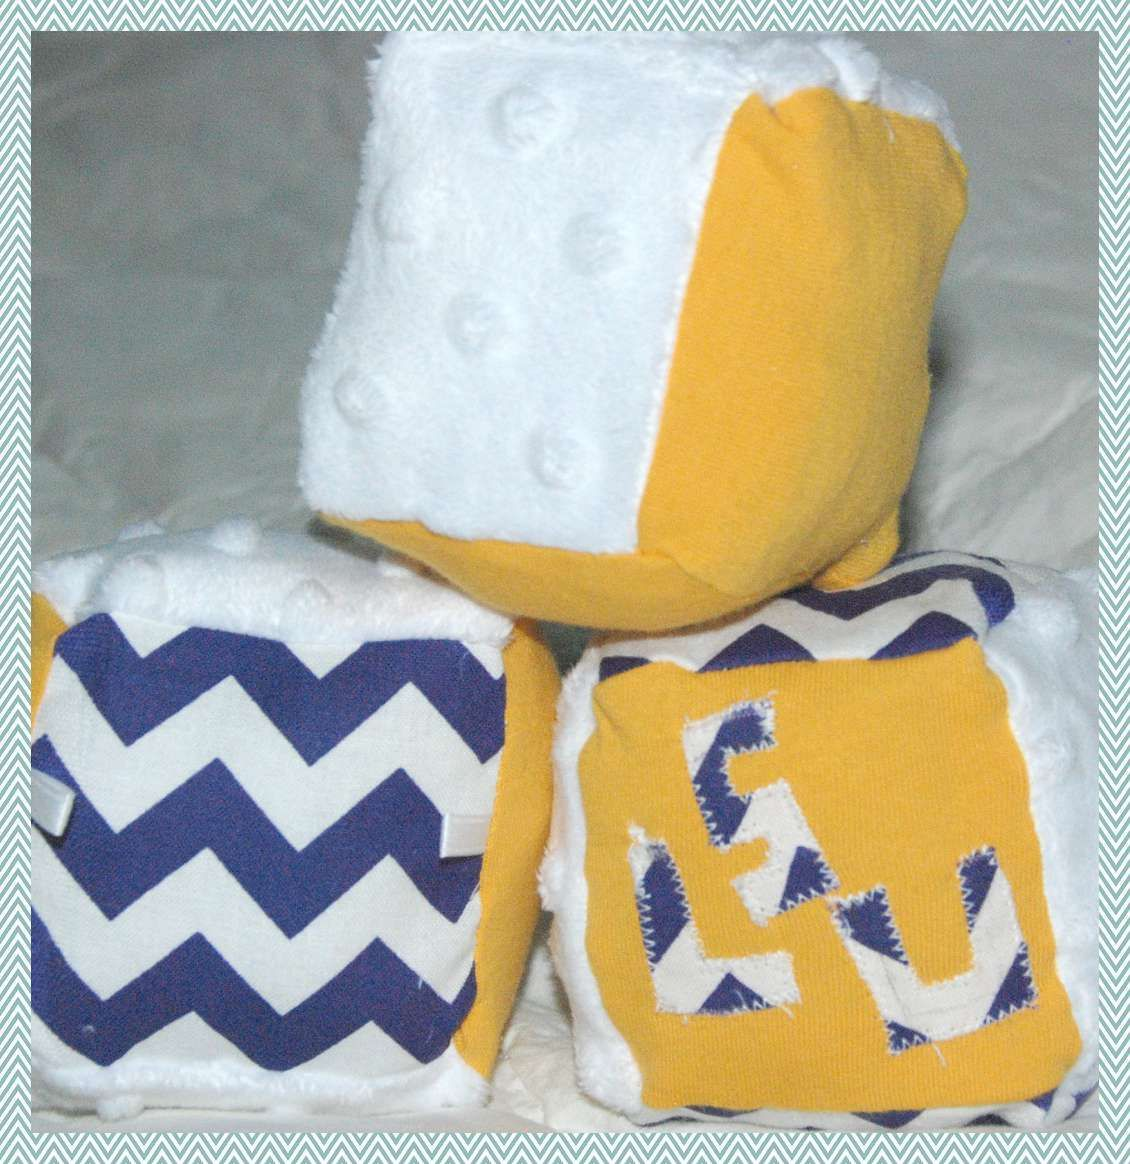 Lsu soft blocks different textures and they contain bells for